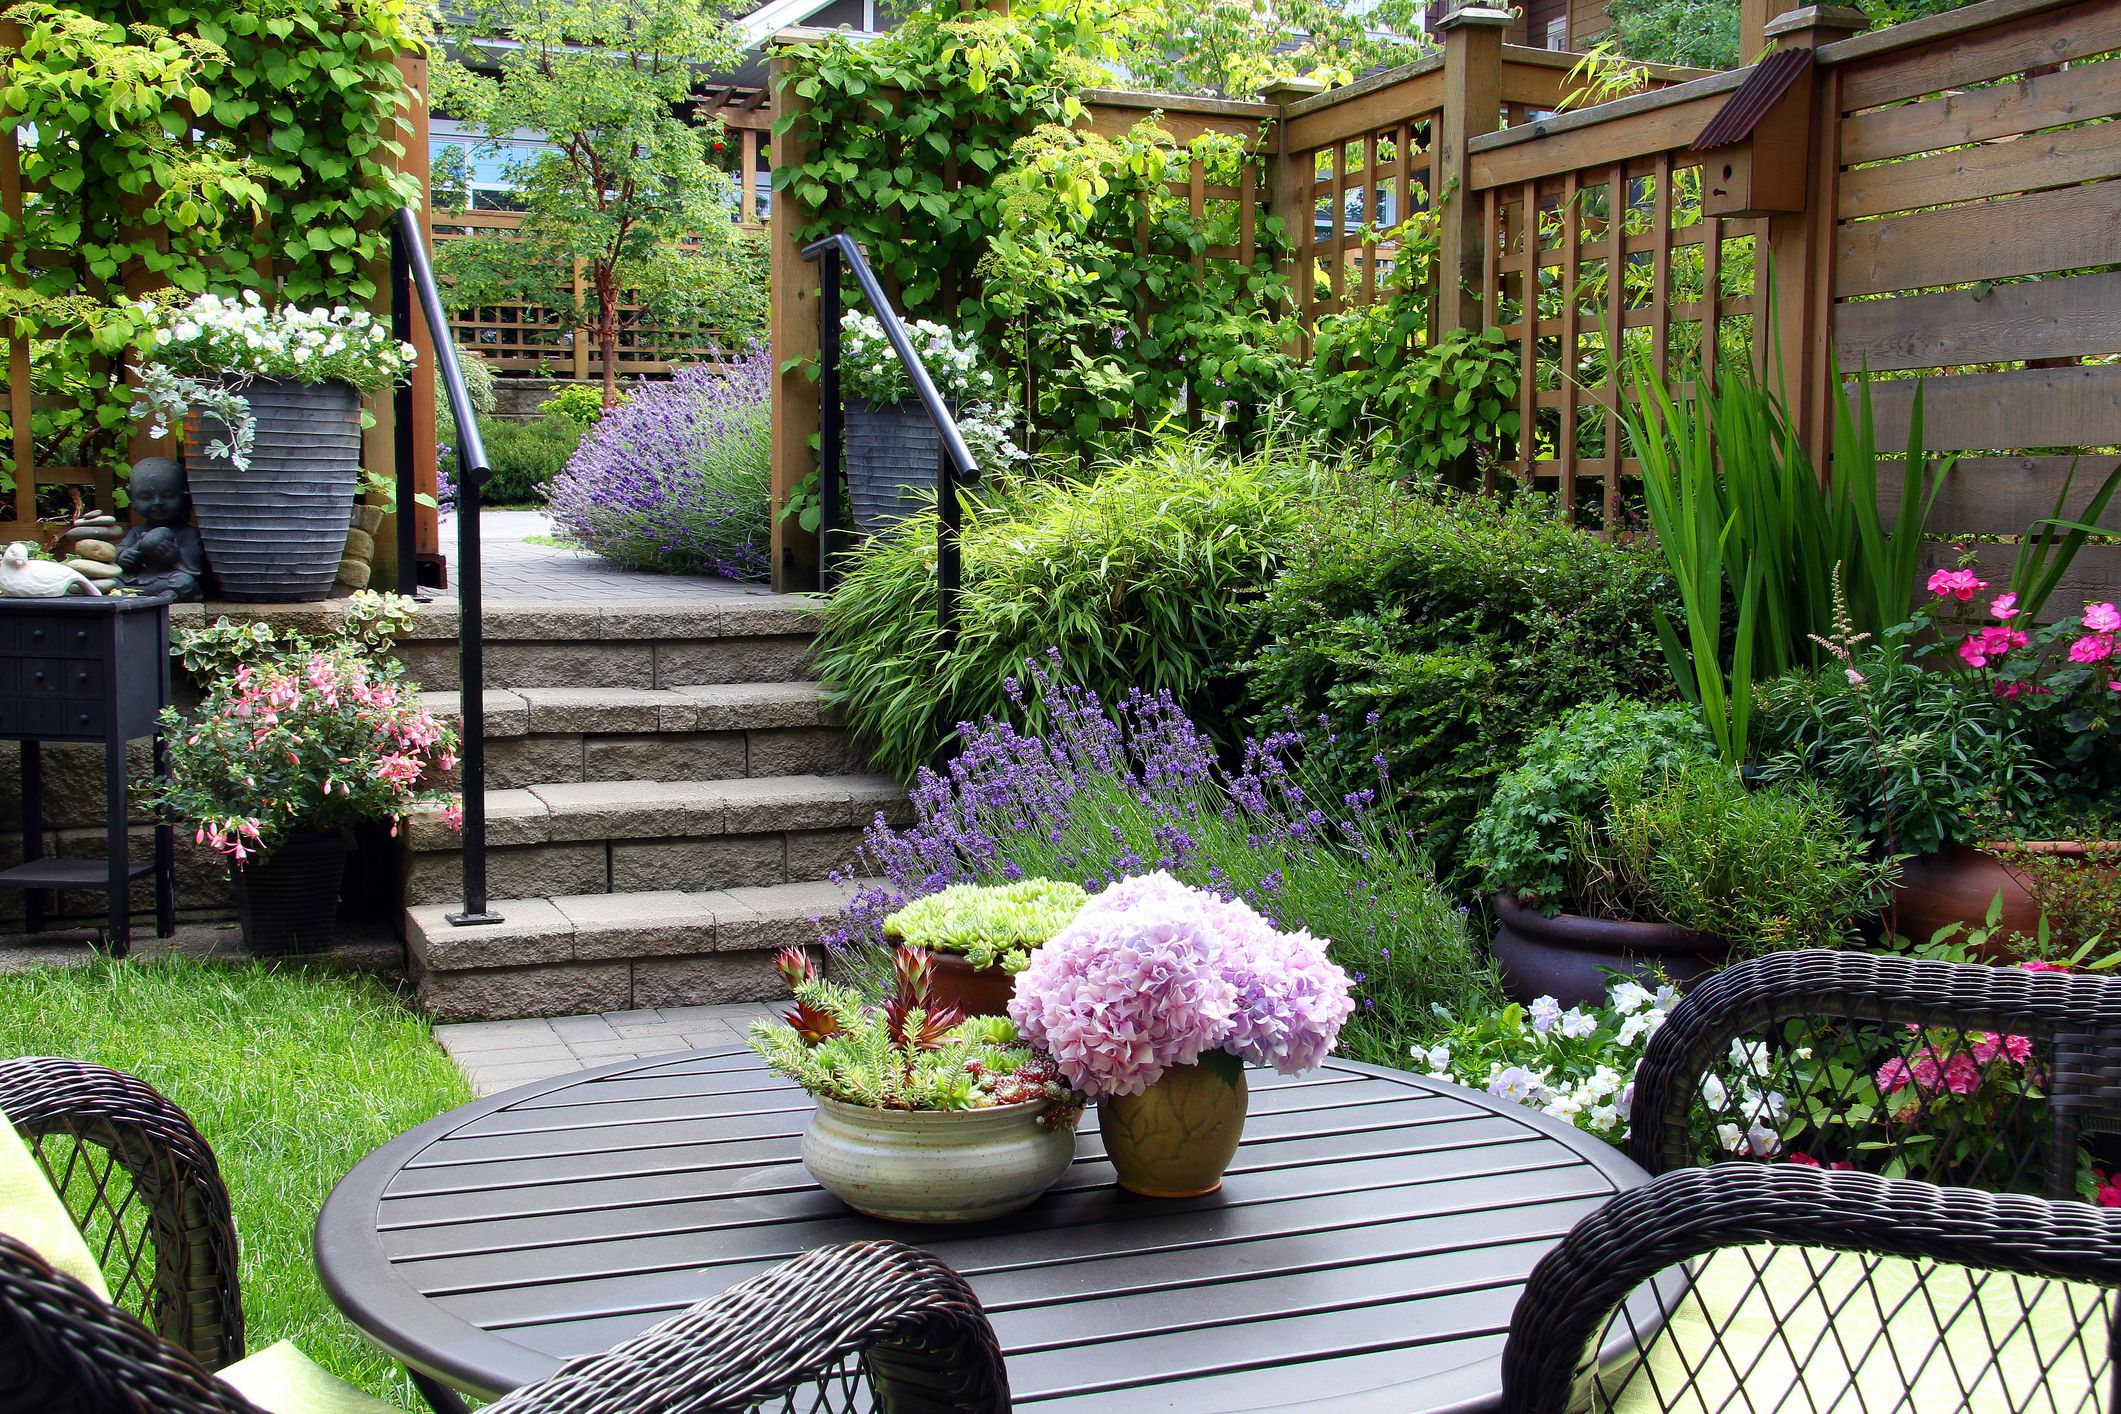 40 Small Garden Ideas Small Garden Designs for Backyard Design Ideas For Small Yards